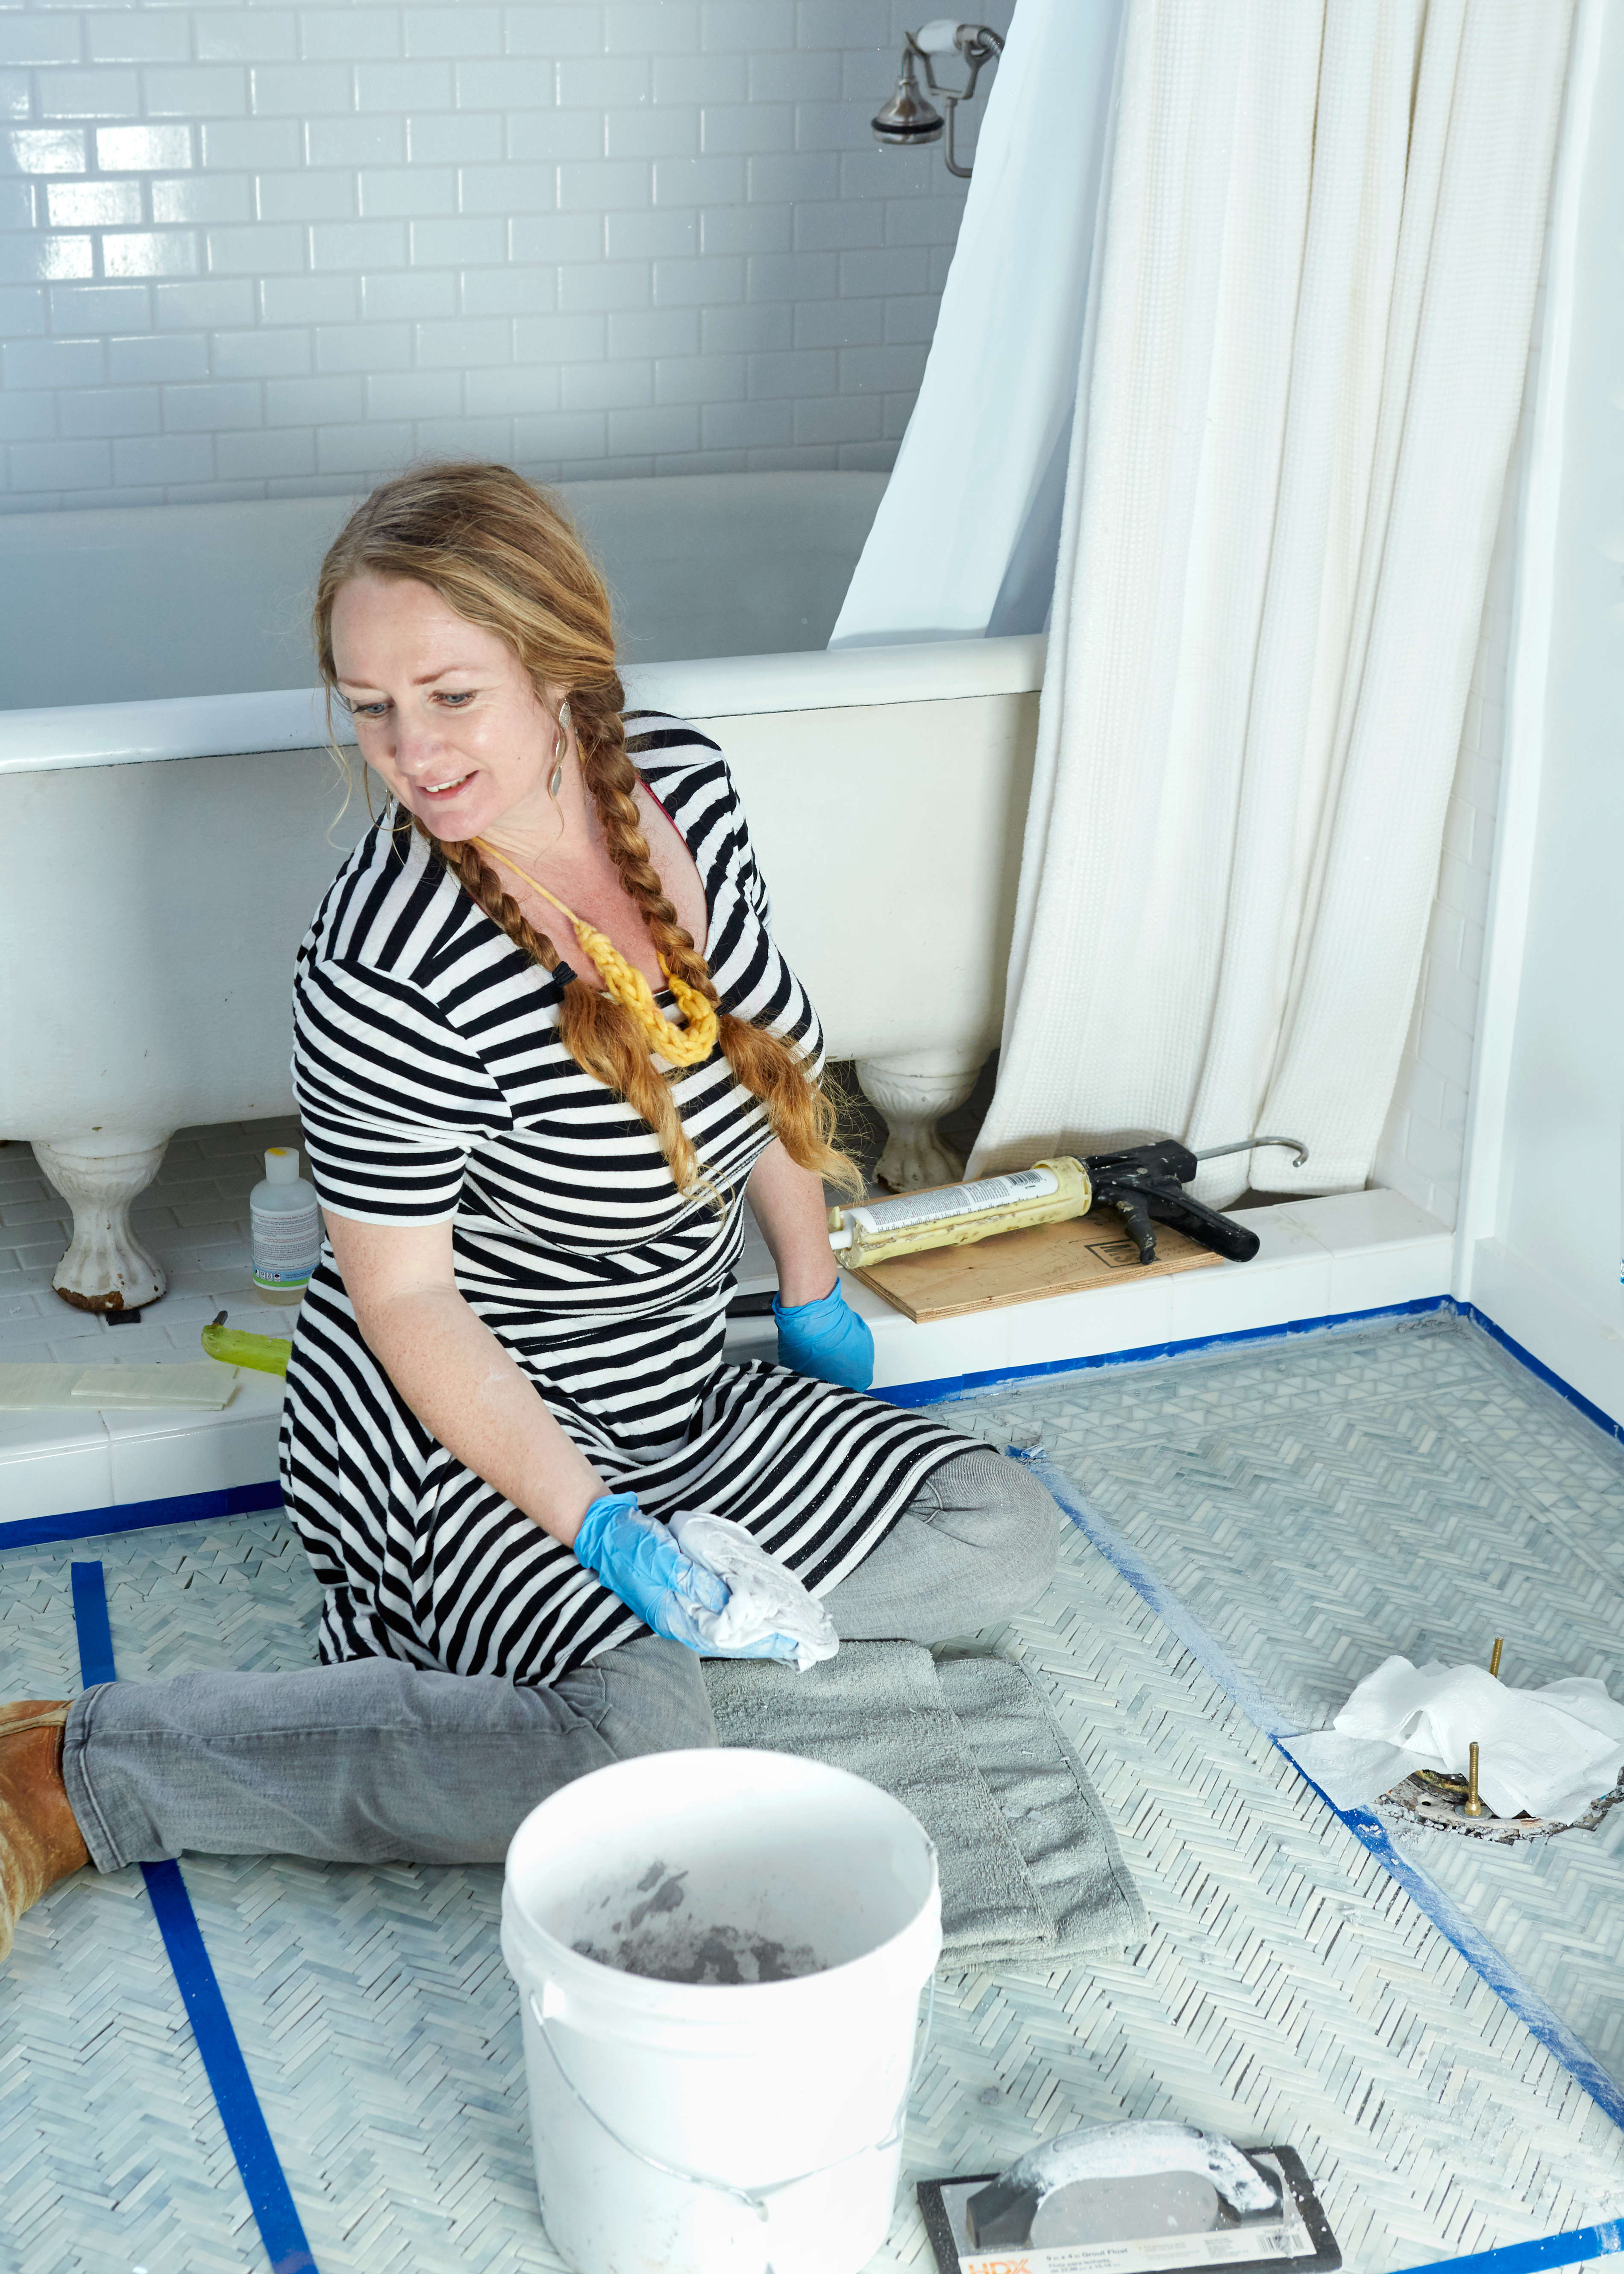 Once the tile is taped into place, Myers works section by section applying sanded grout—&#8